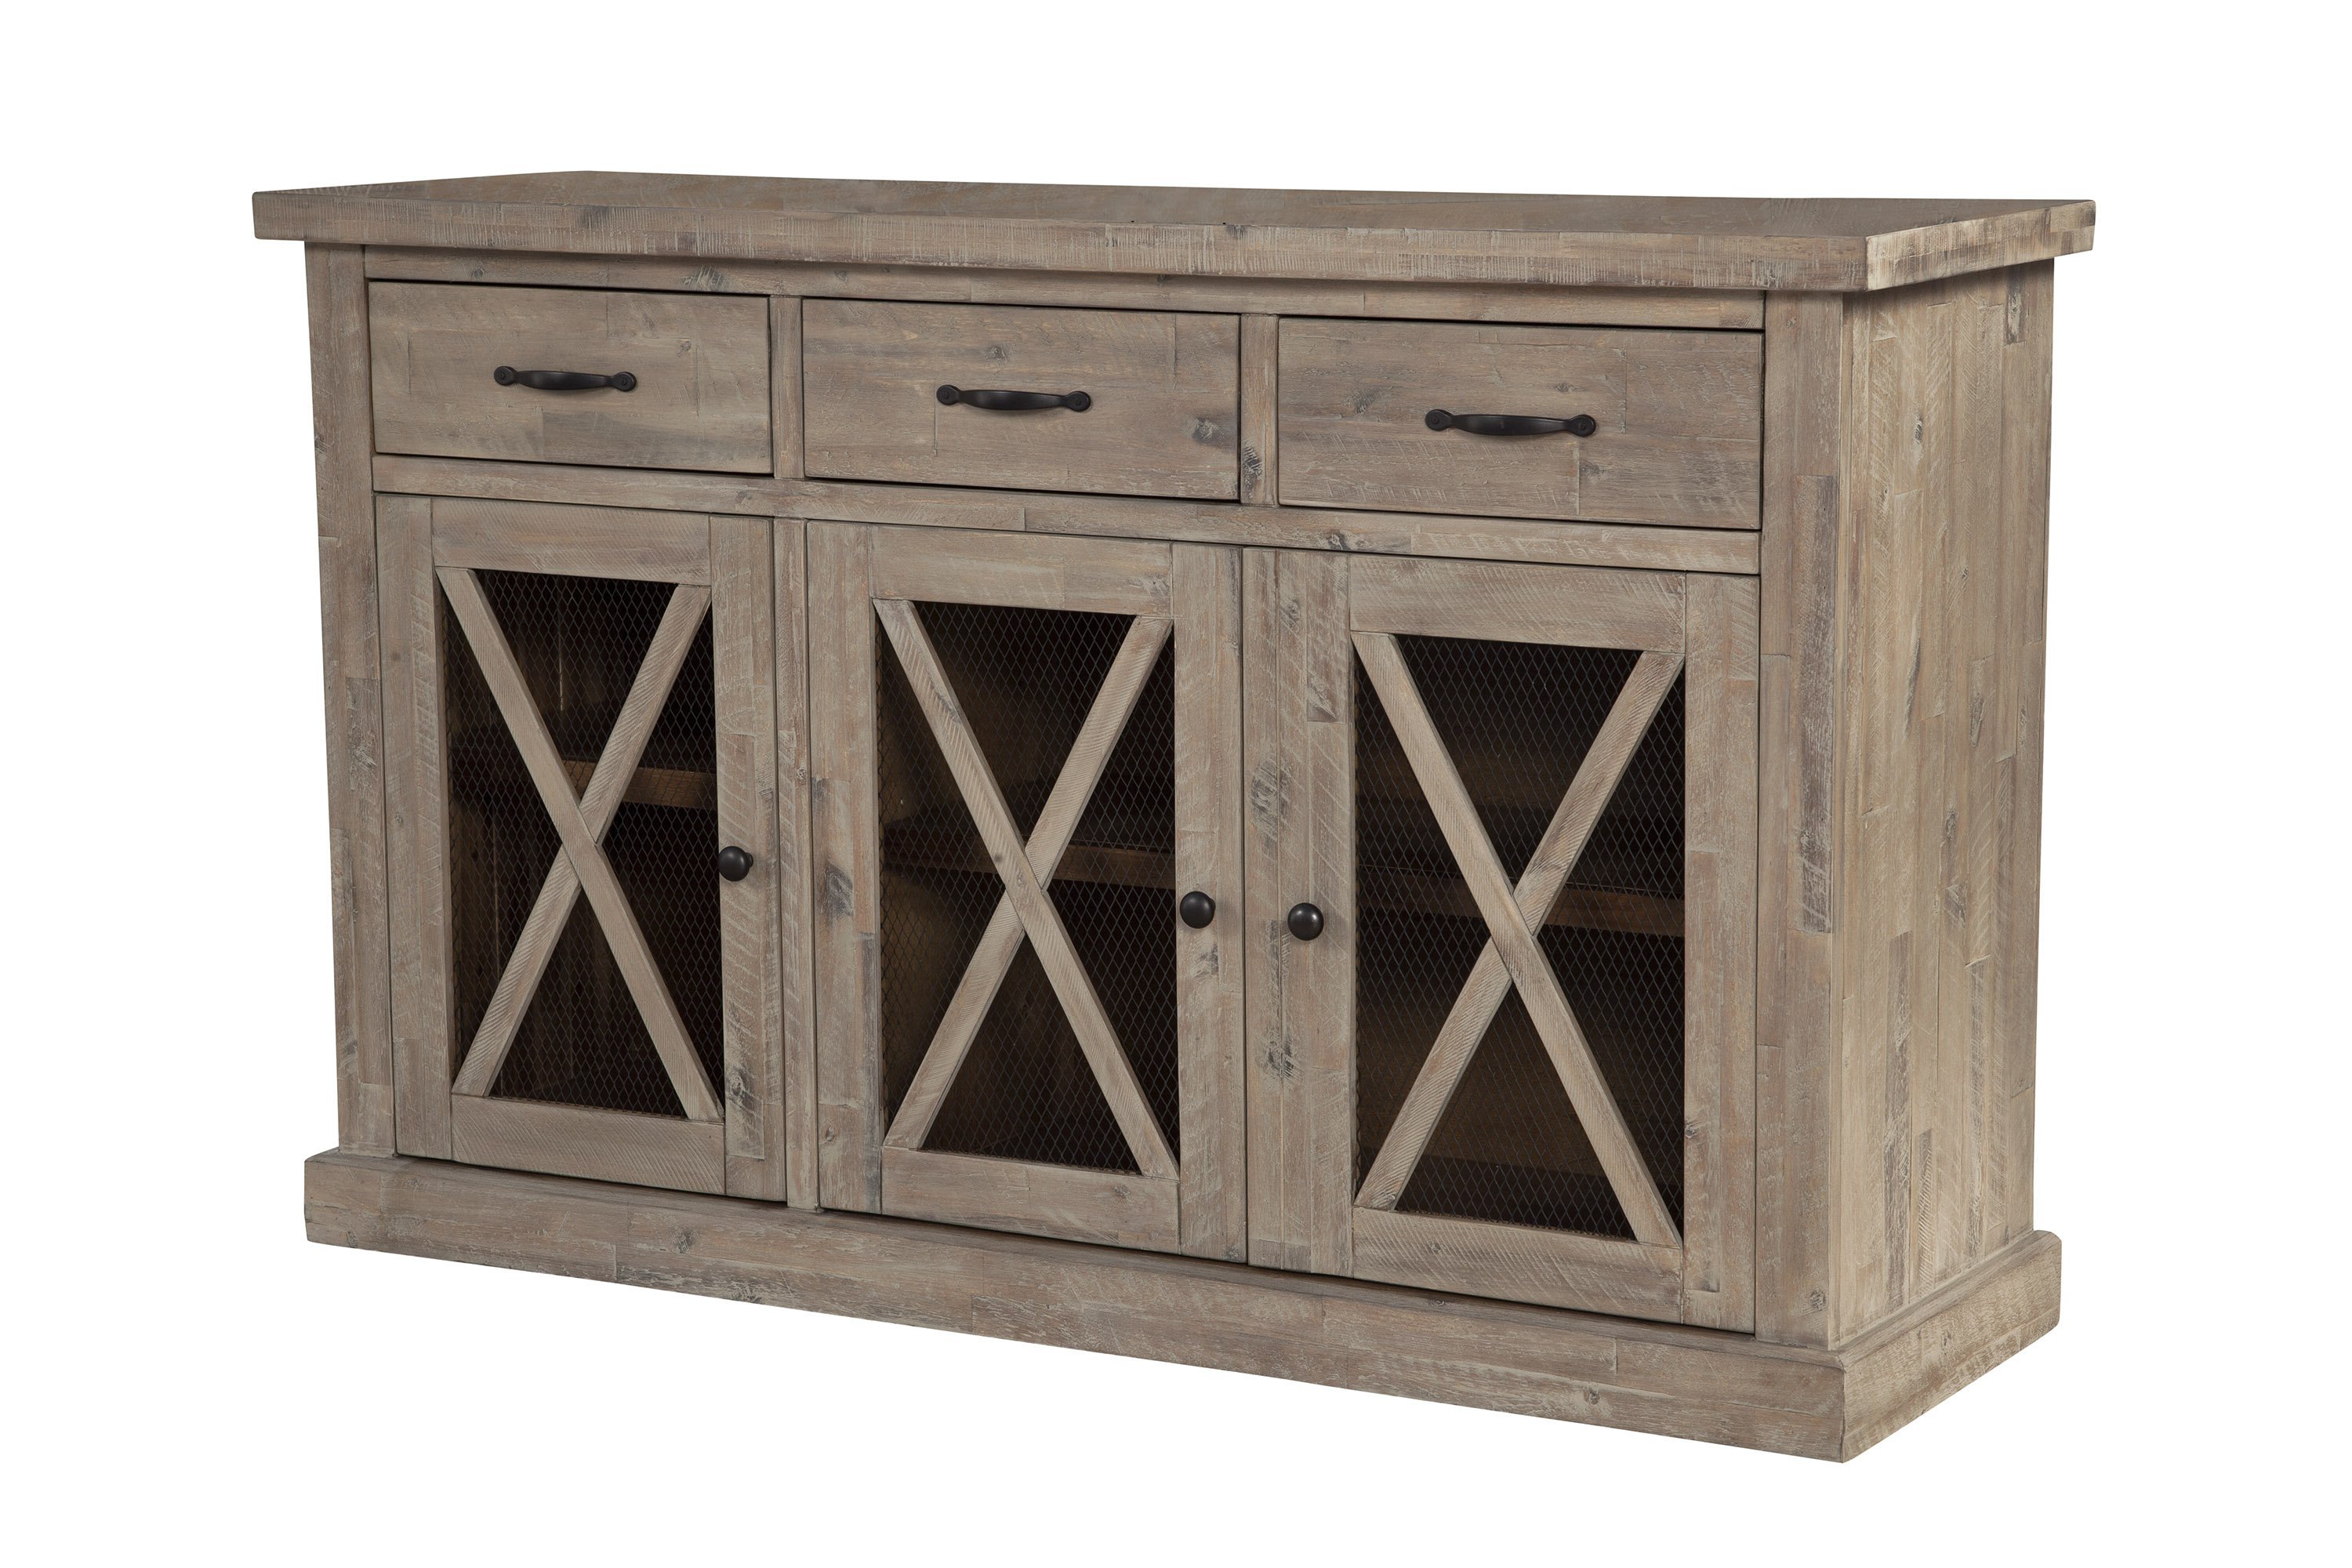 Colborne Sideboard For Fashionable Colborne Sideboards (Gallery 2 of 20)